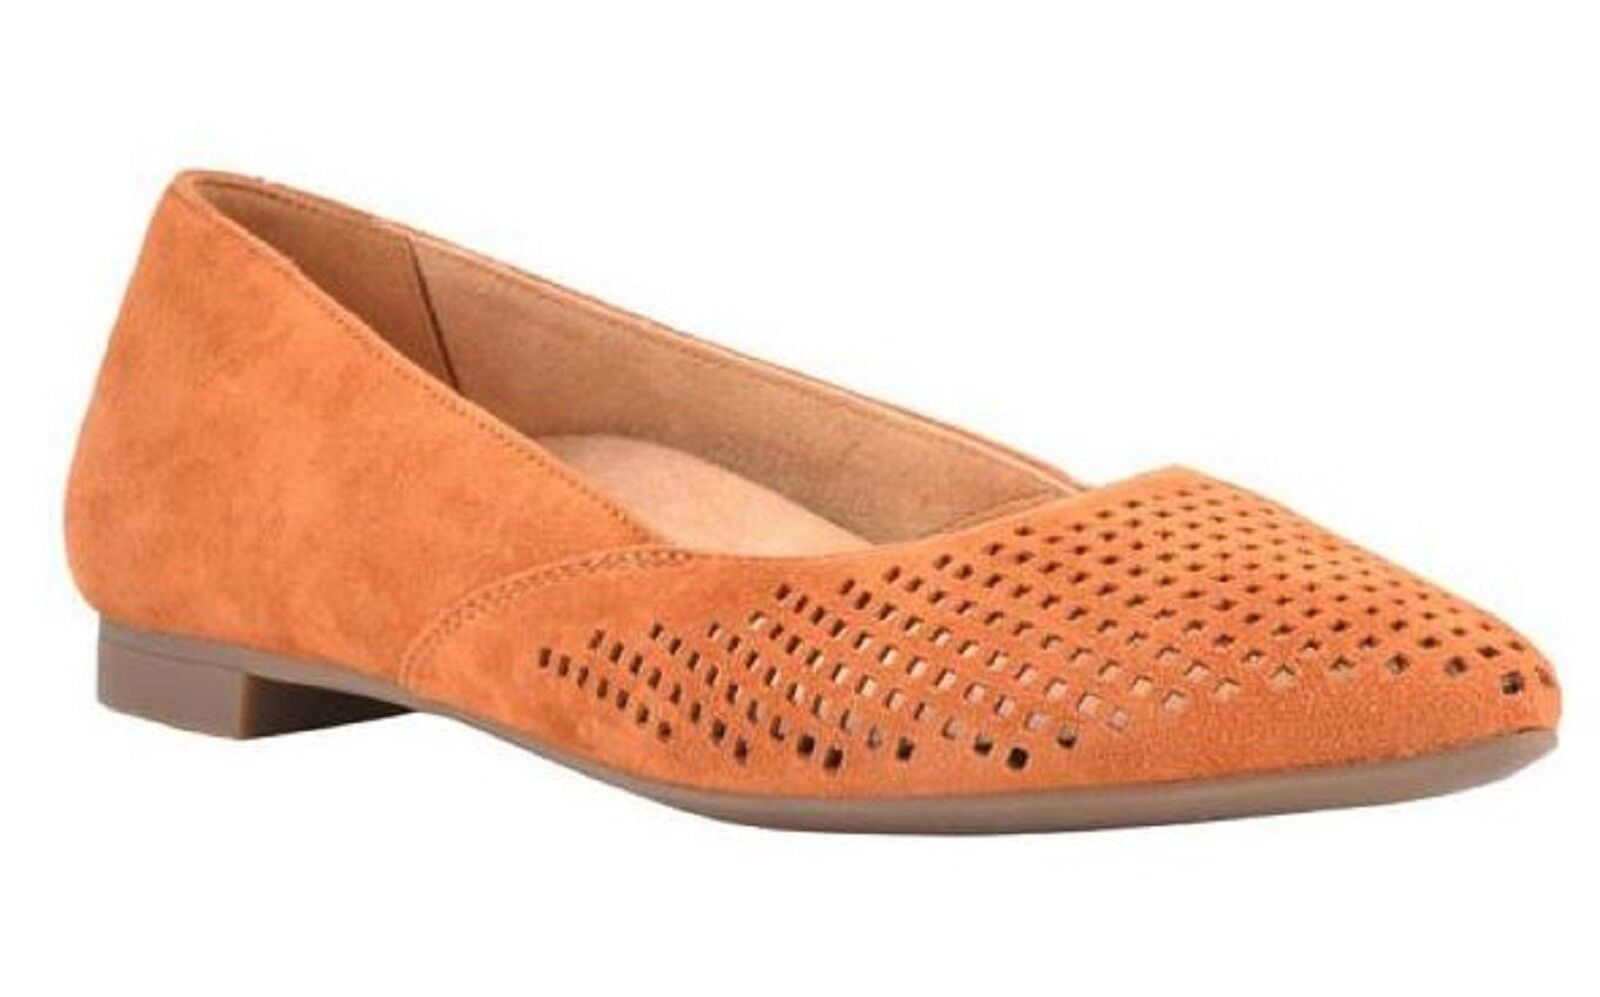 Vionic Orthaheel GEM POSEY Kid Suede Ballet Flats Shoes CARAMEL SIZE 8 M NIB